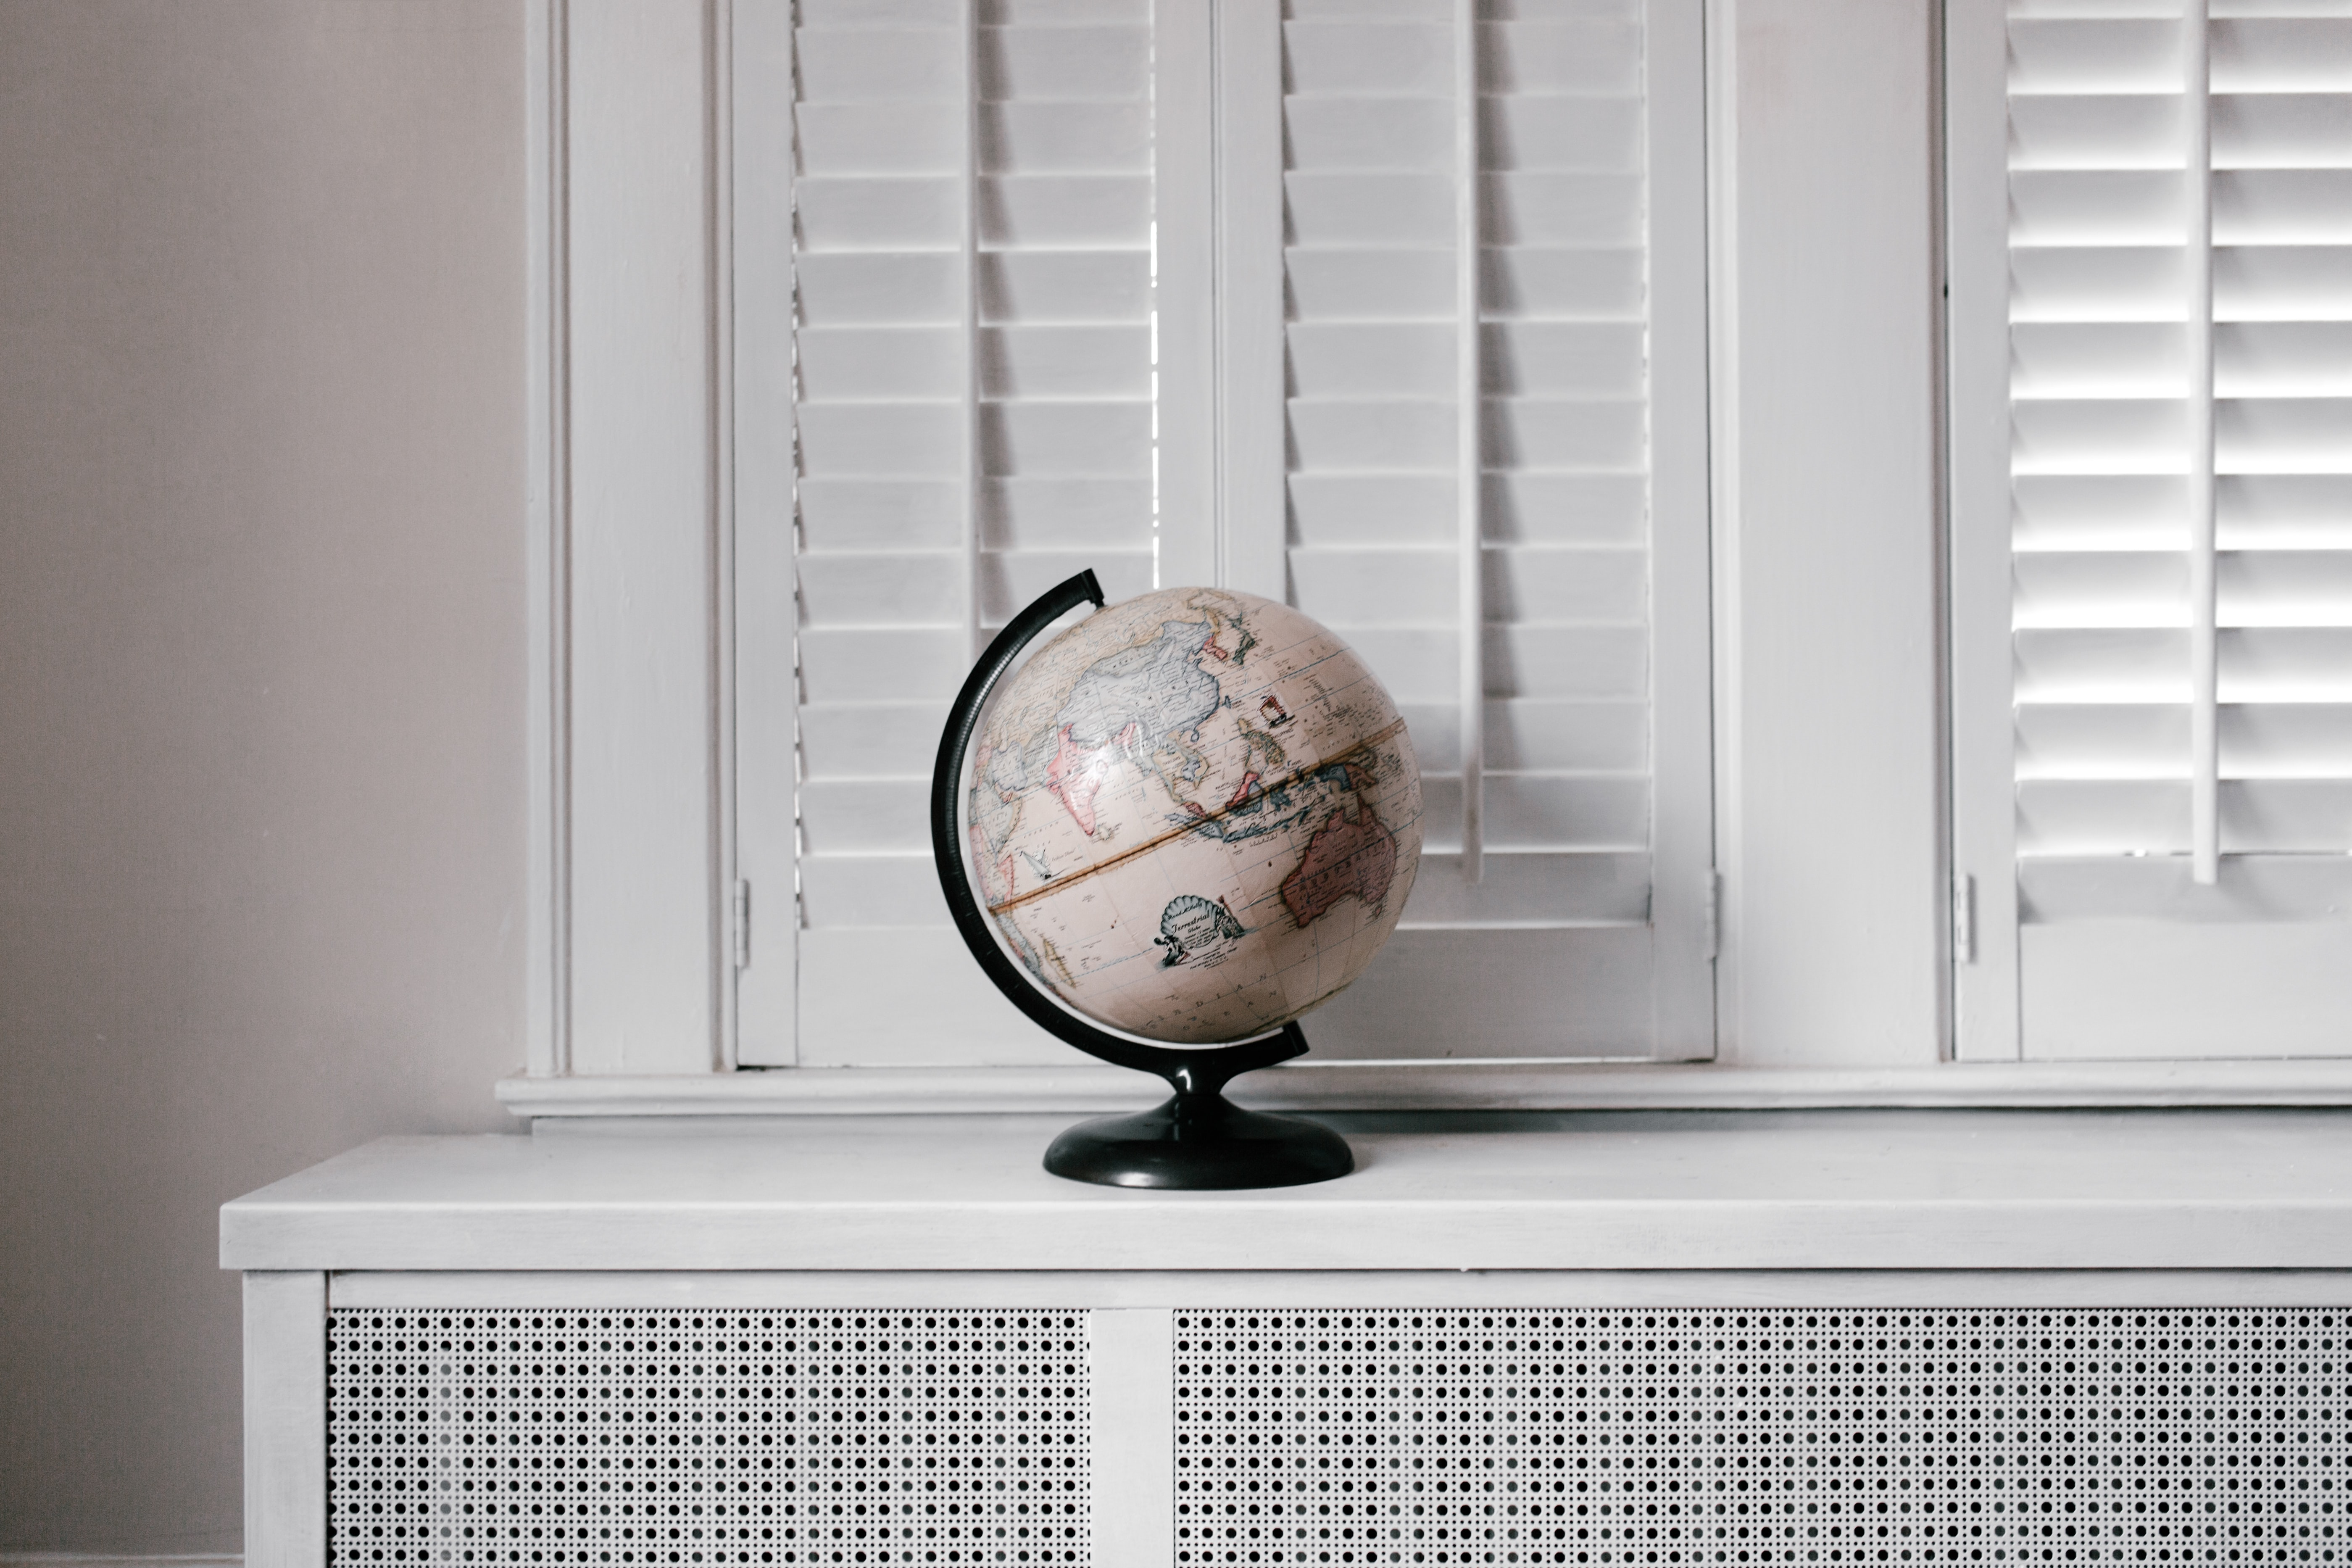 A cream colored globe of the Earth sits in a in a completely white room